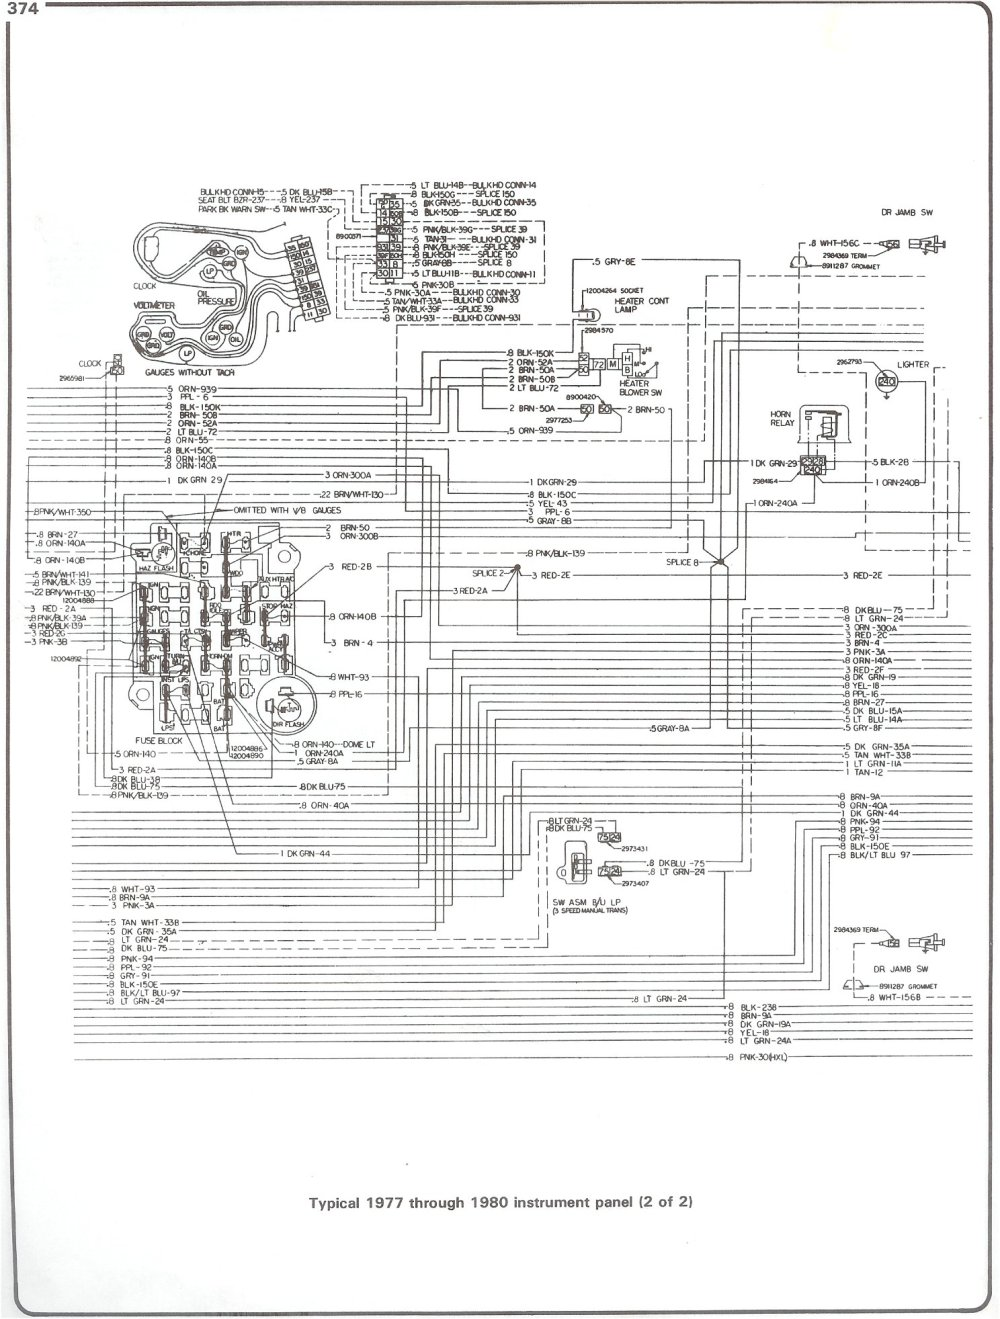 medium resolution of 1977 chevy c10 alternator wiring wiring diagram mega 1977 chevy c10 alternator wiring